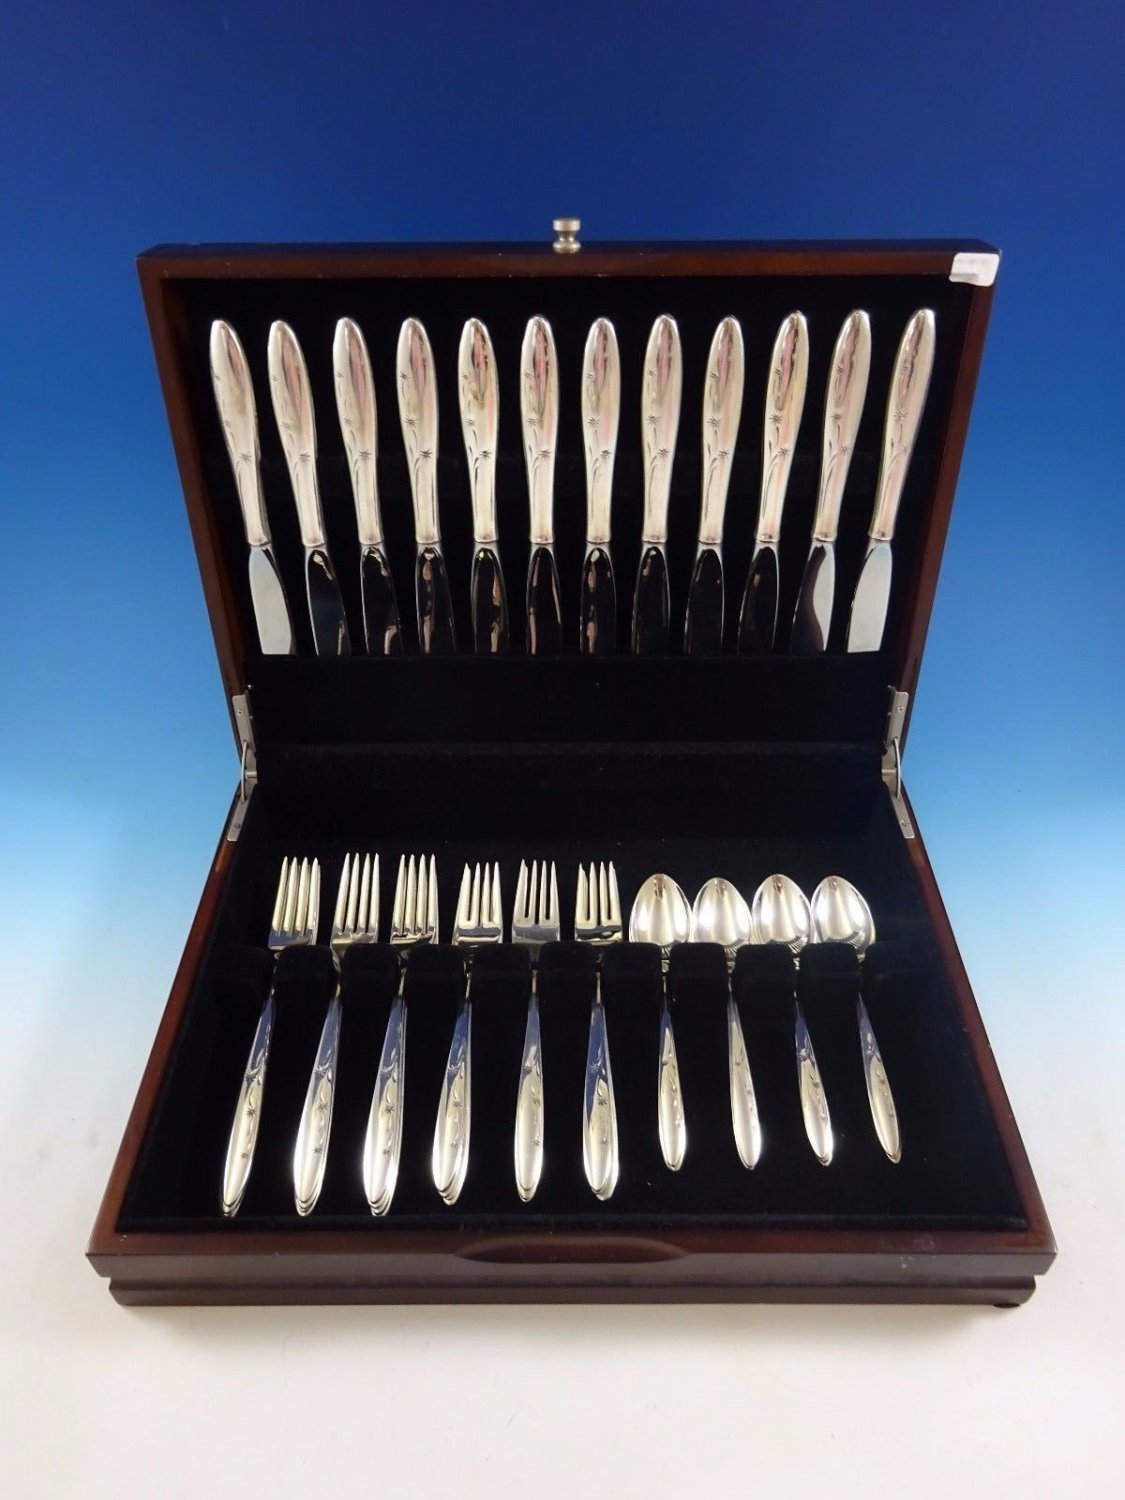 Celeste by Gorham Sterling Silver Flatware Service For 12 Set 48 Pieces